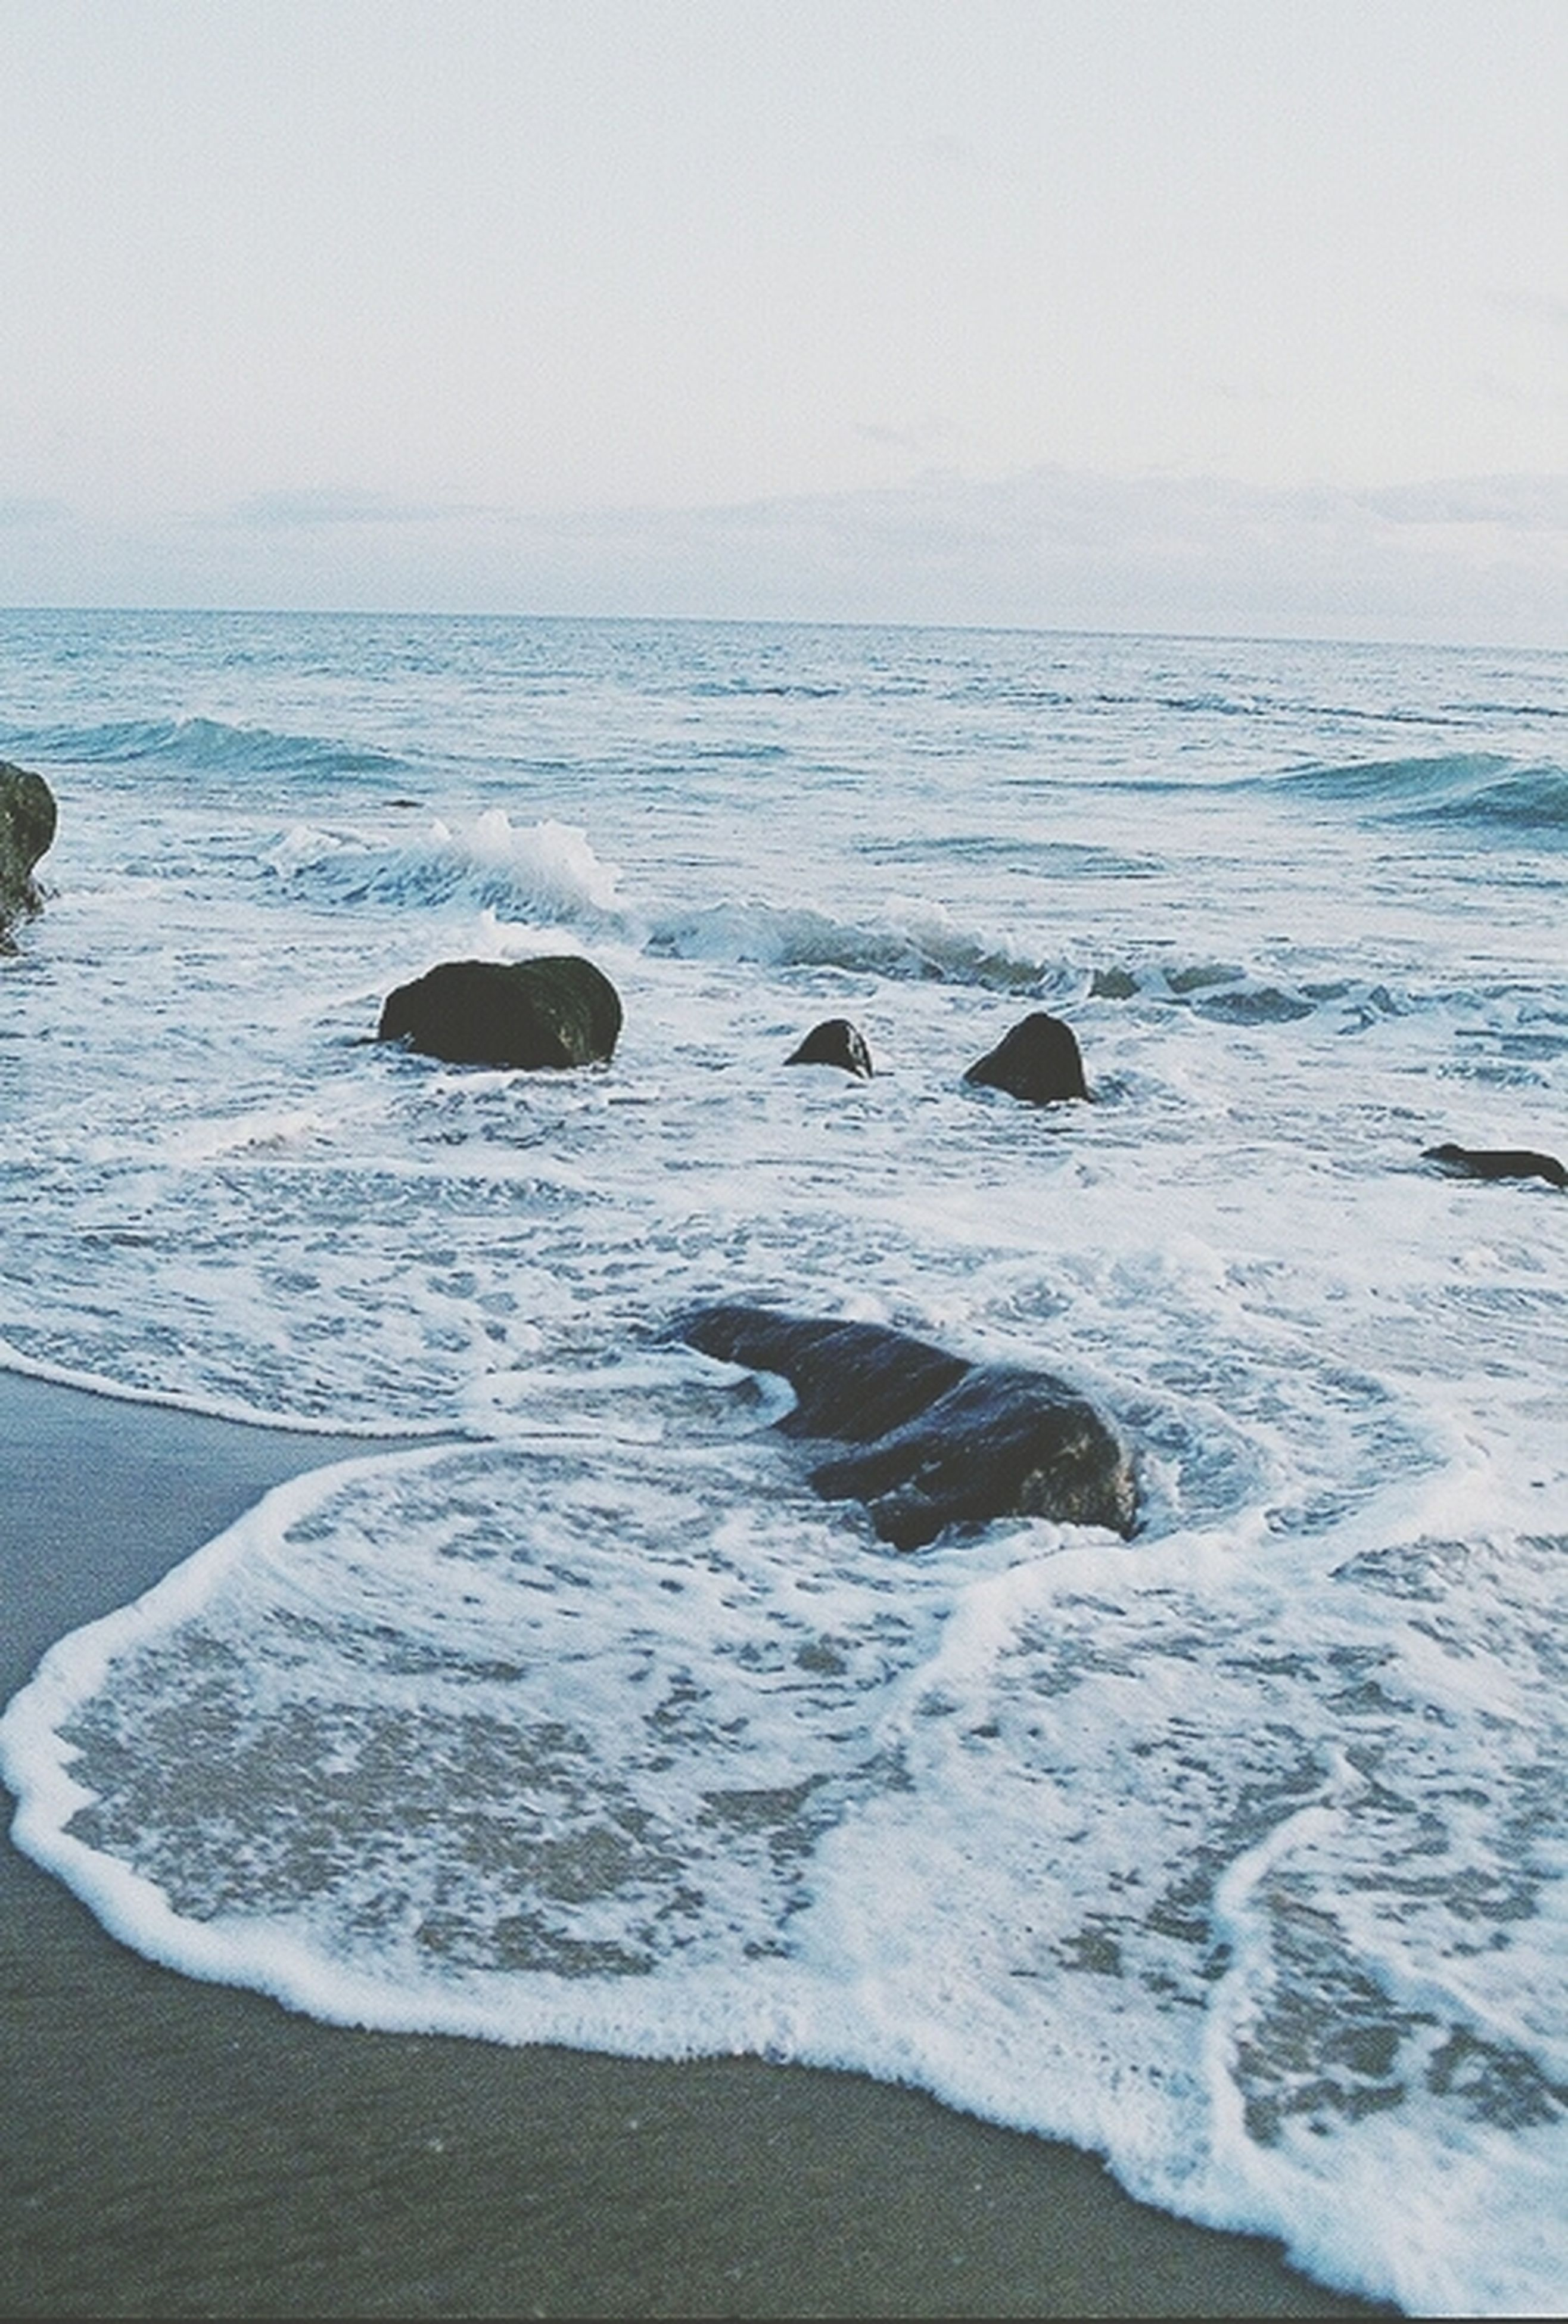 sea, water, beach, horizon over water, shore, wave, scenics, surf, tranquil scene, beauty in nature, tranquility, nature, sand, clear sky, idyllic, sky, copy space, remote, coastline, motion